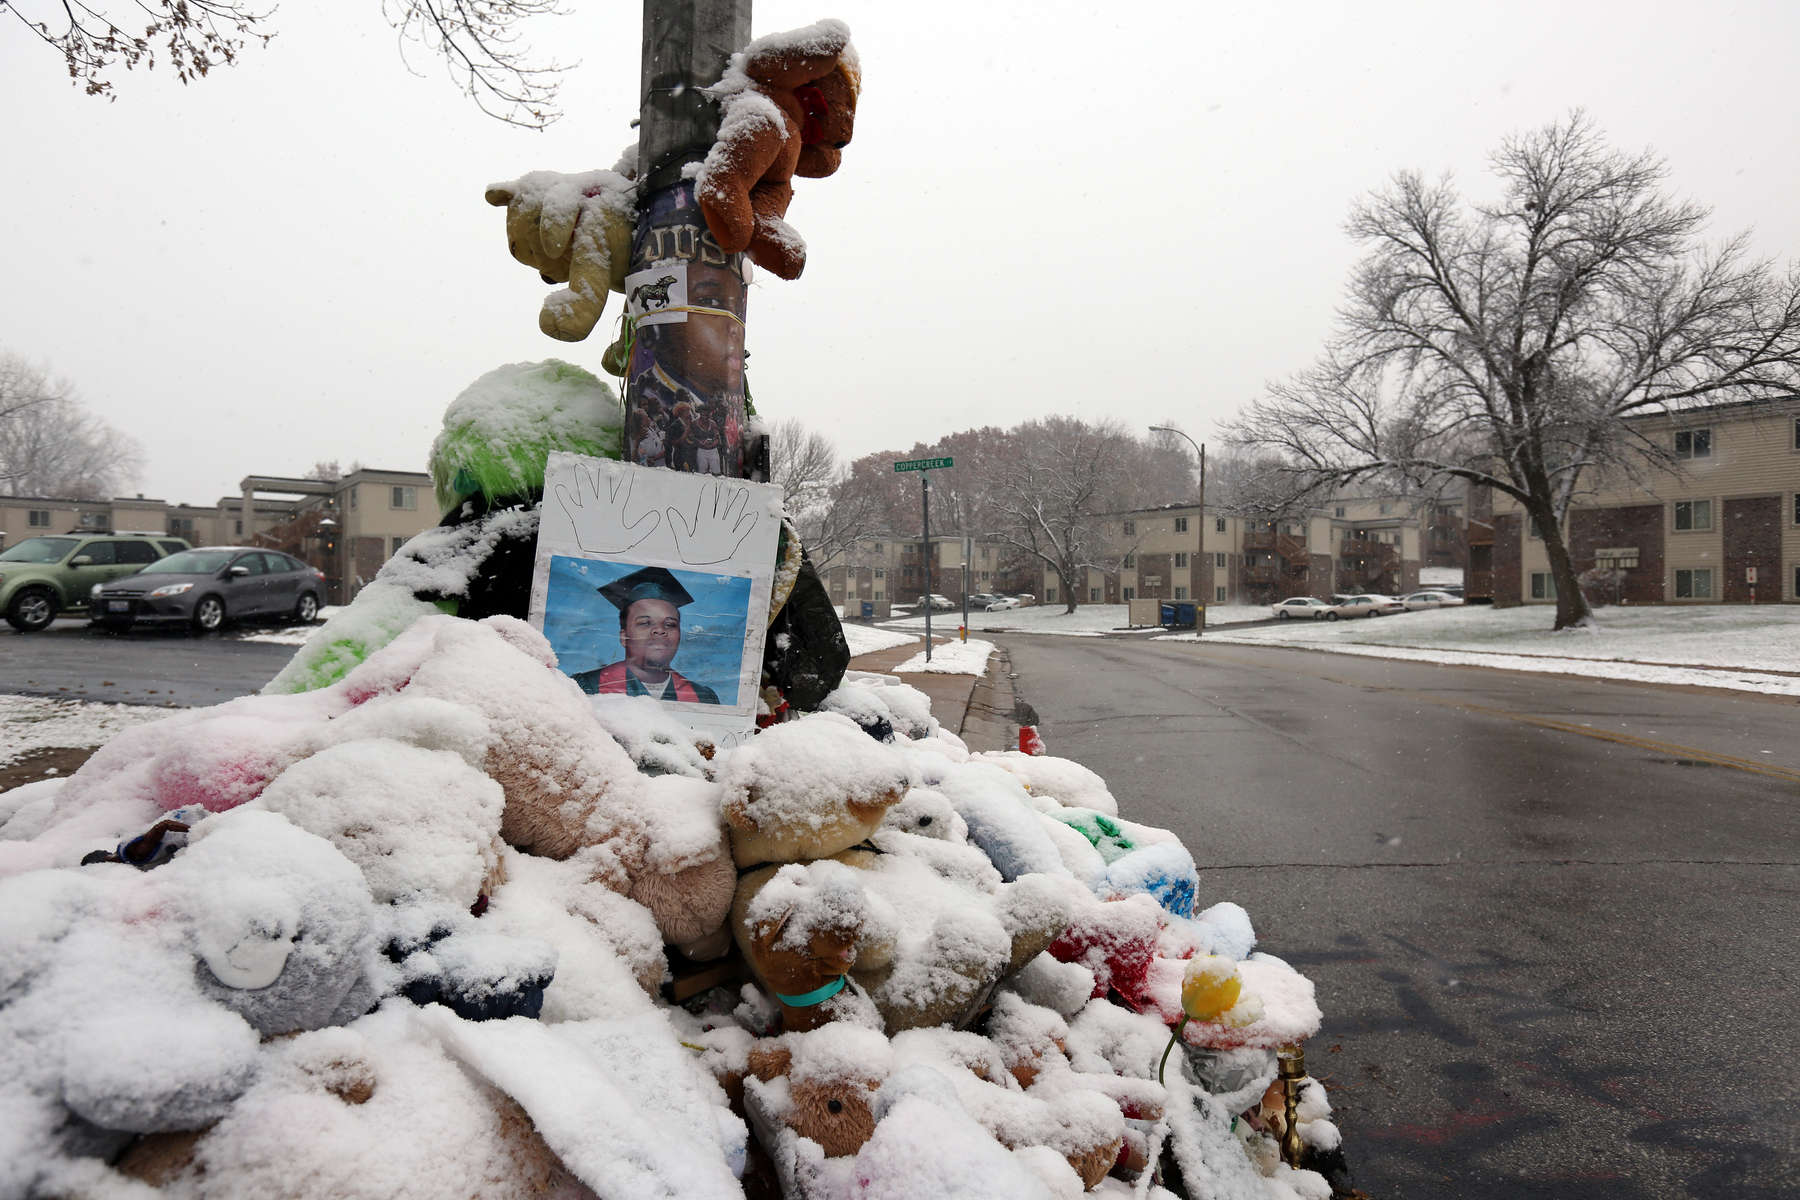 Snow falls on Michael Brown's memorial on Canfield Drive in Ferguson on Sunday, Nov. 16, 2014.  It has been 100 days since Michael Brown was shot and killed by a police officer on Aug. 9th.Photo By David Carson, dcarson@post-dispatch.com